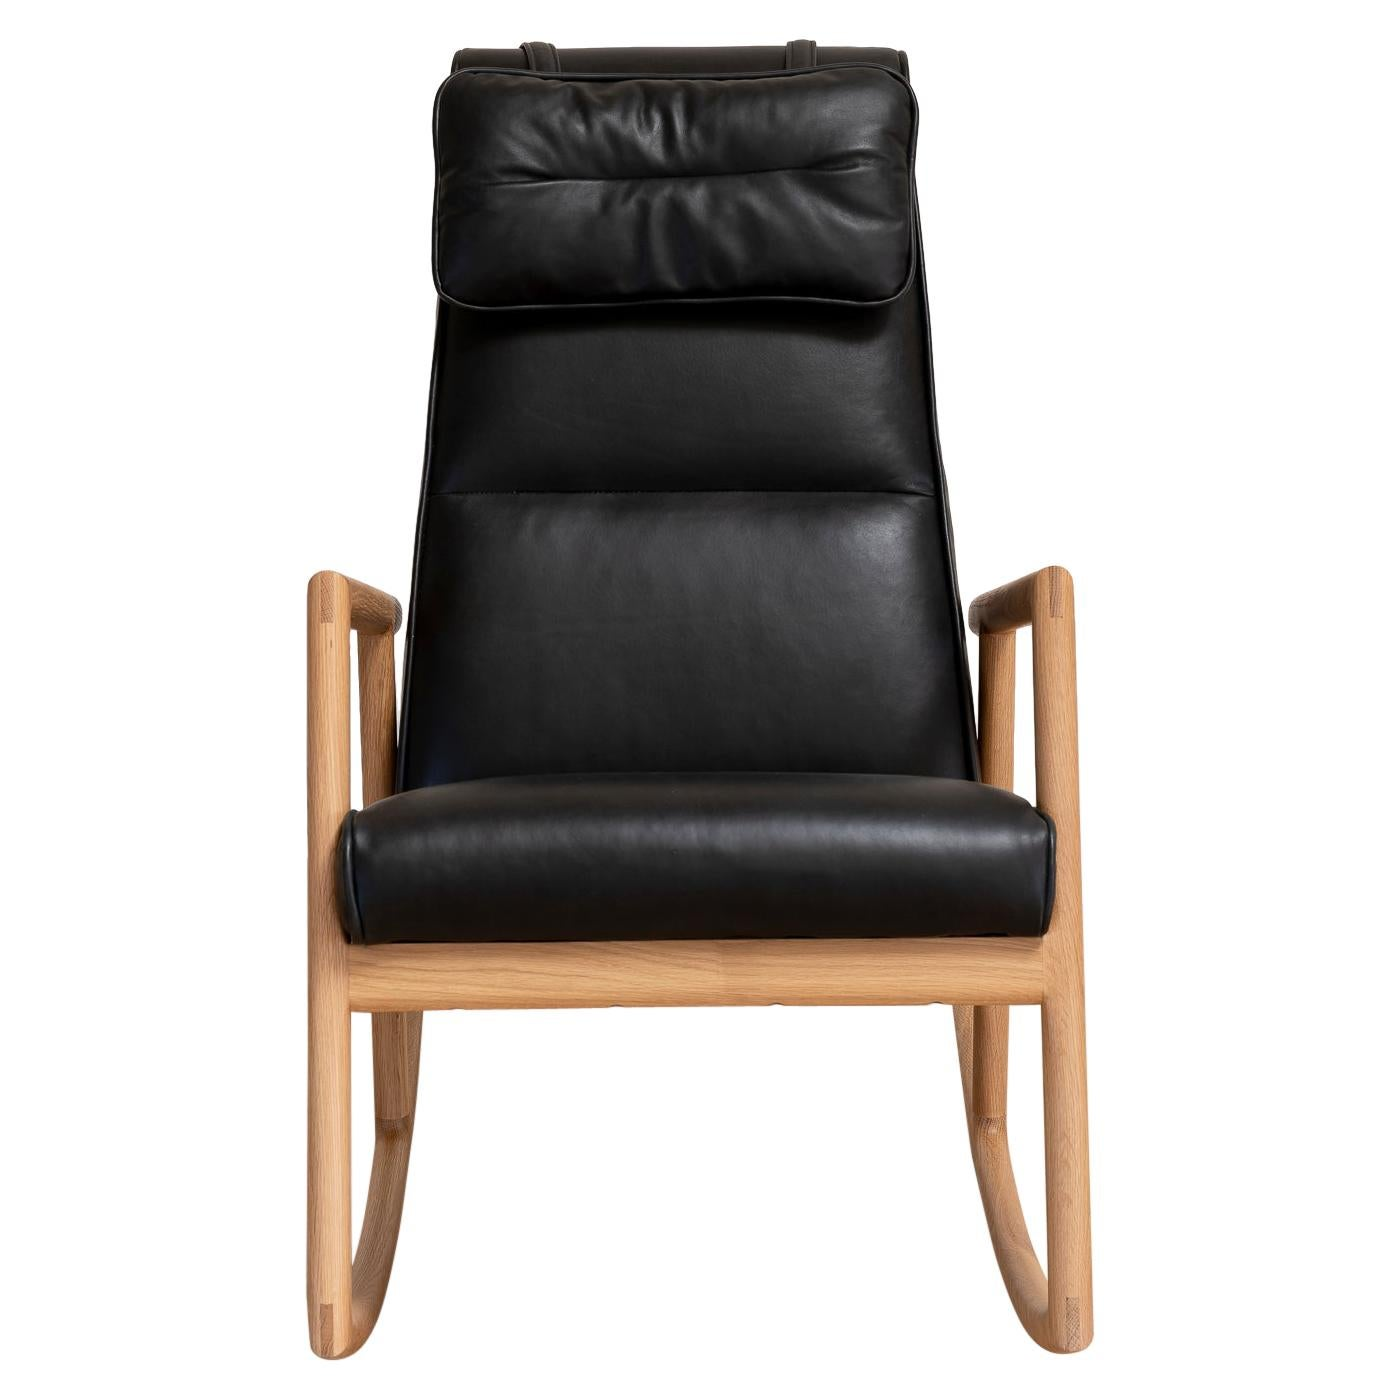 Earl White Oak, Black Leather Moresby Rocking Chair